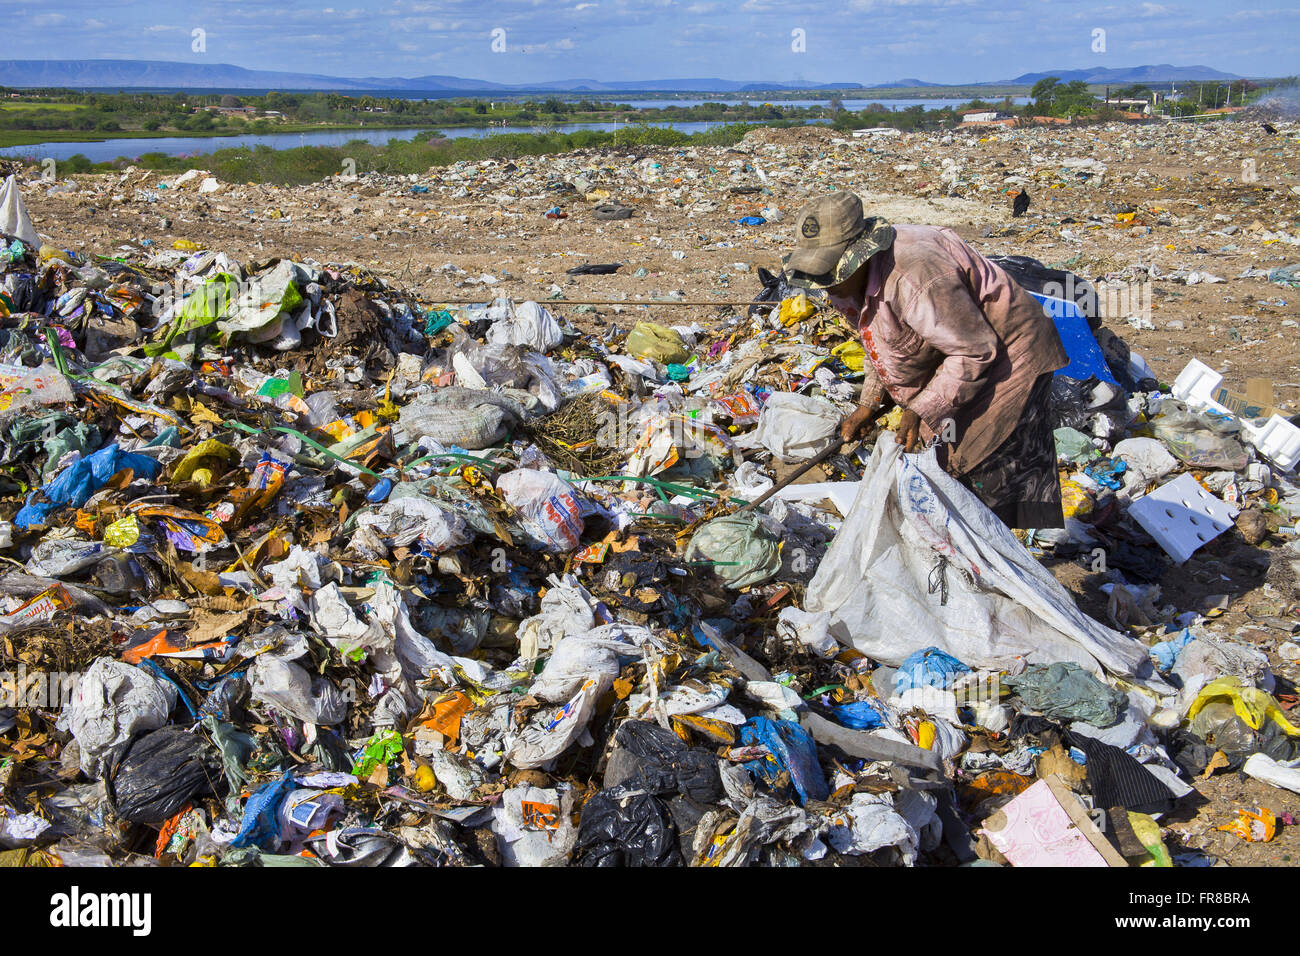 Garbage collector in sanitary landfill ARPA - Alternative Recycling Paulo Afonso - Stock Image